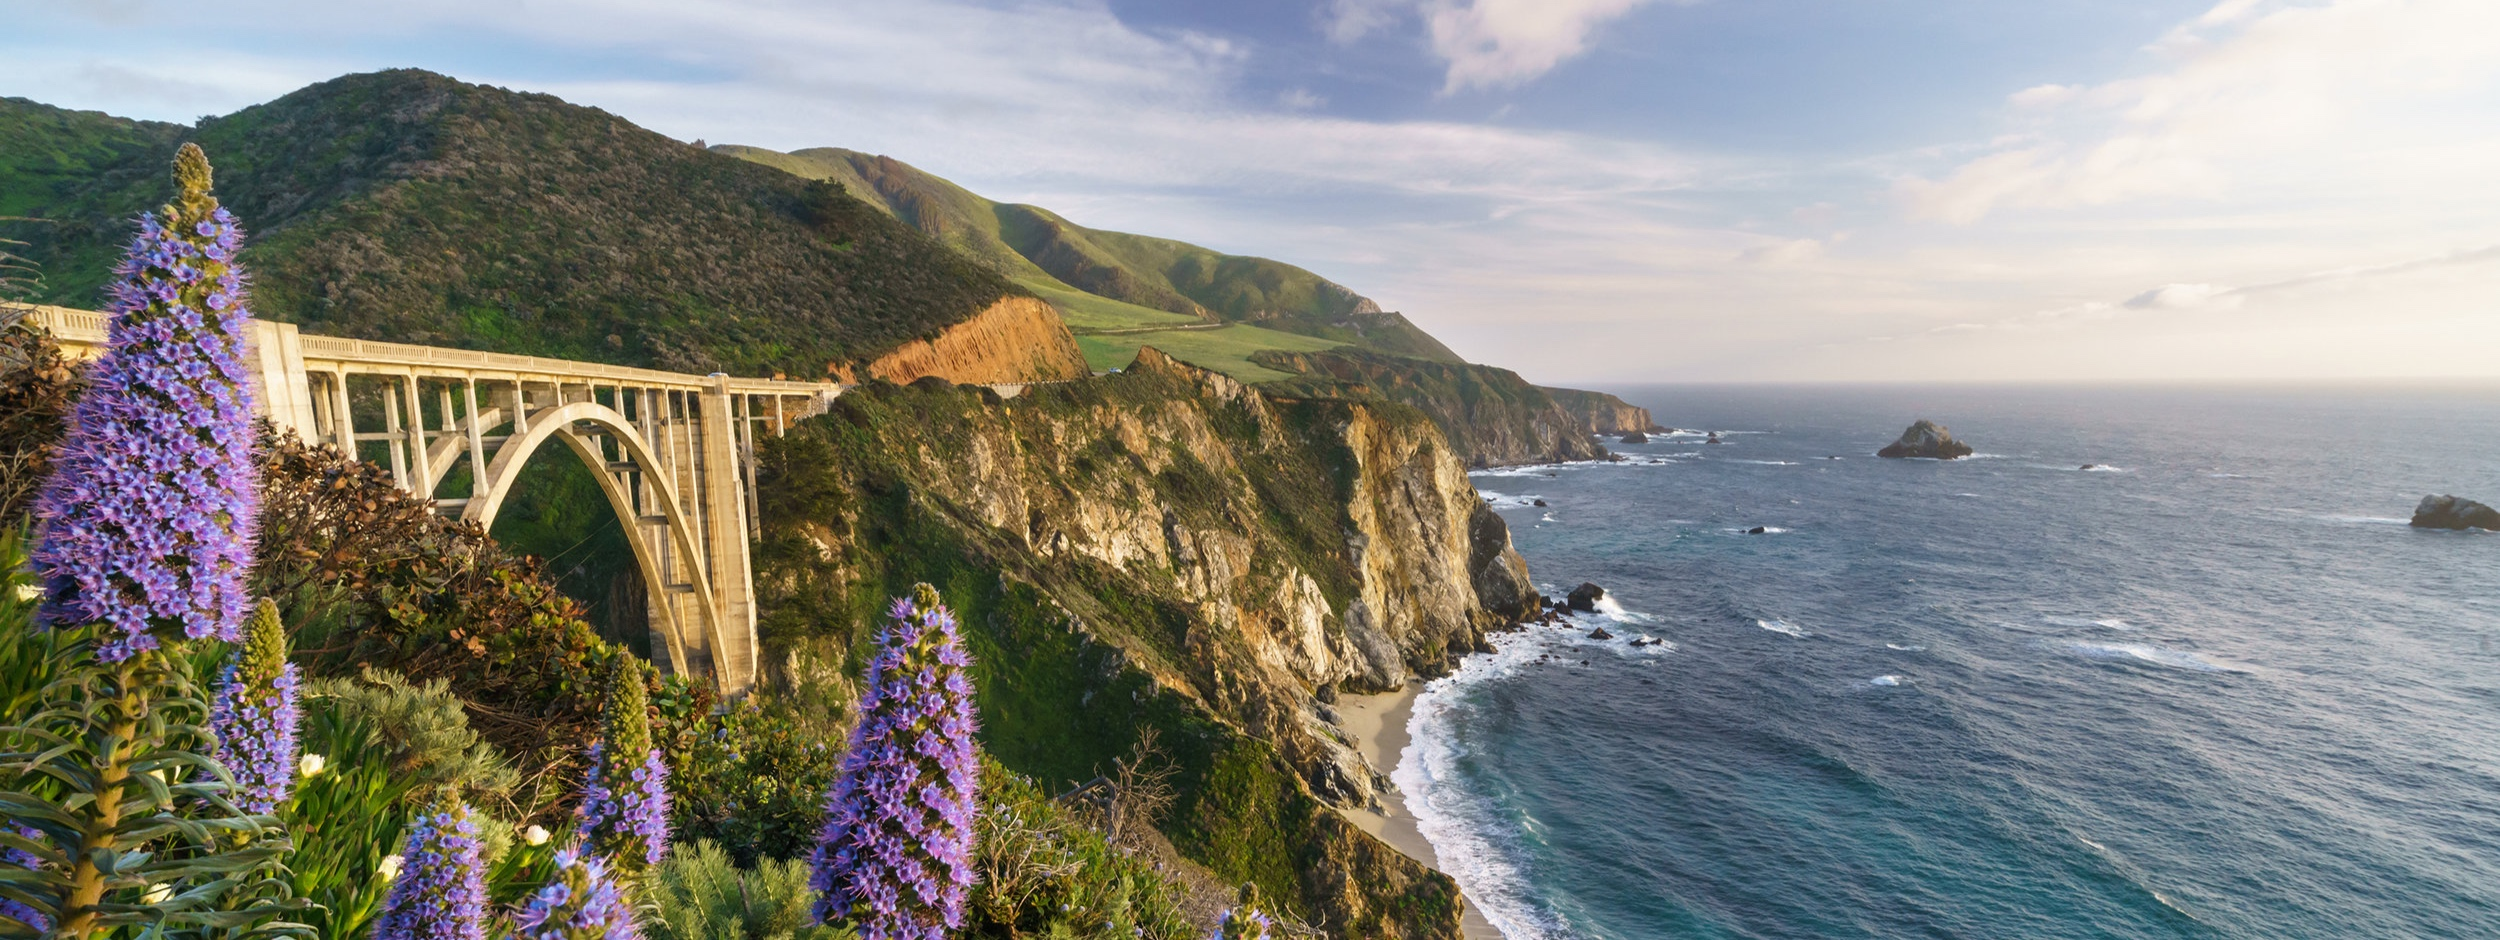 bixby-bridge-big-sur-california-nature-spots-outdoor-fun-views-via-magazine-shutterstock_401354710.jpg